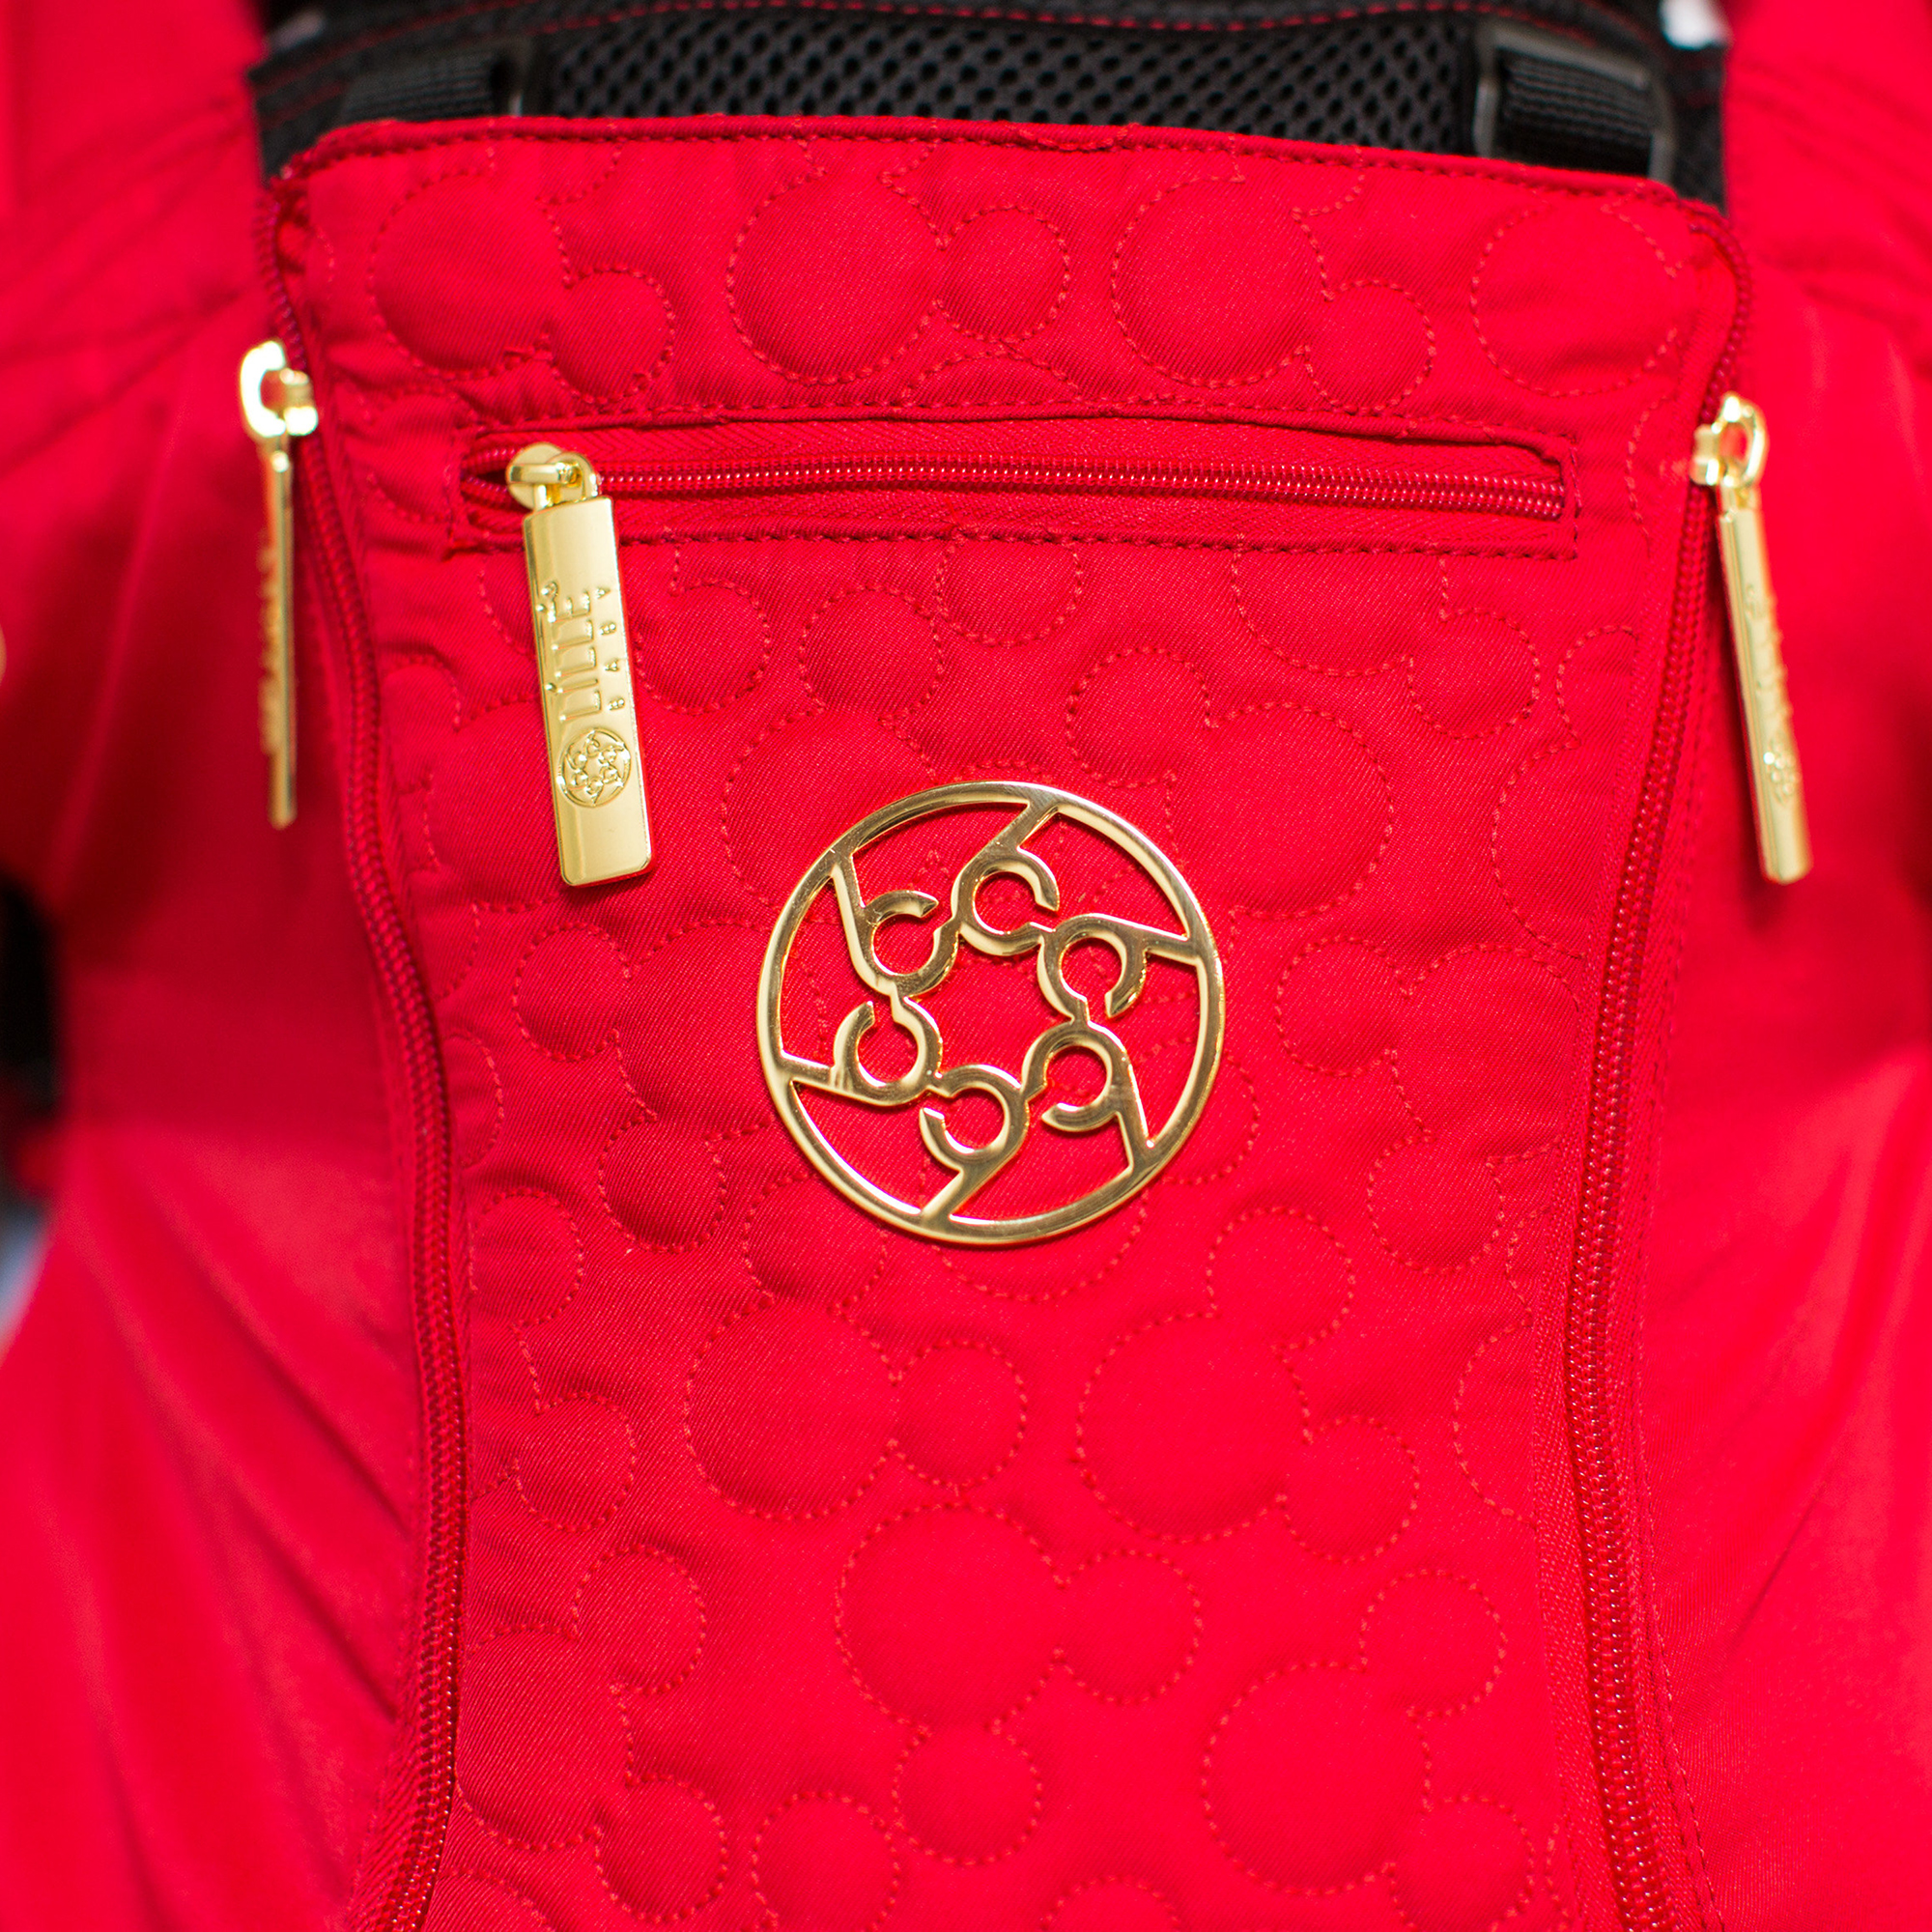 lillebaby-complete-all-seasons-embossed-baby-carrier-red-mickey-embroidery.jpg